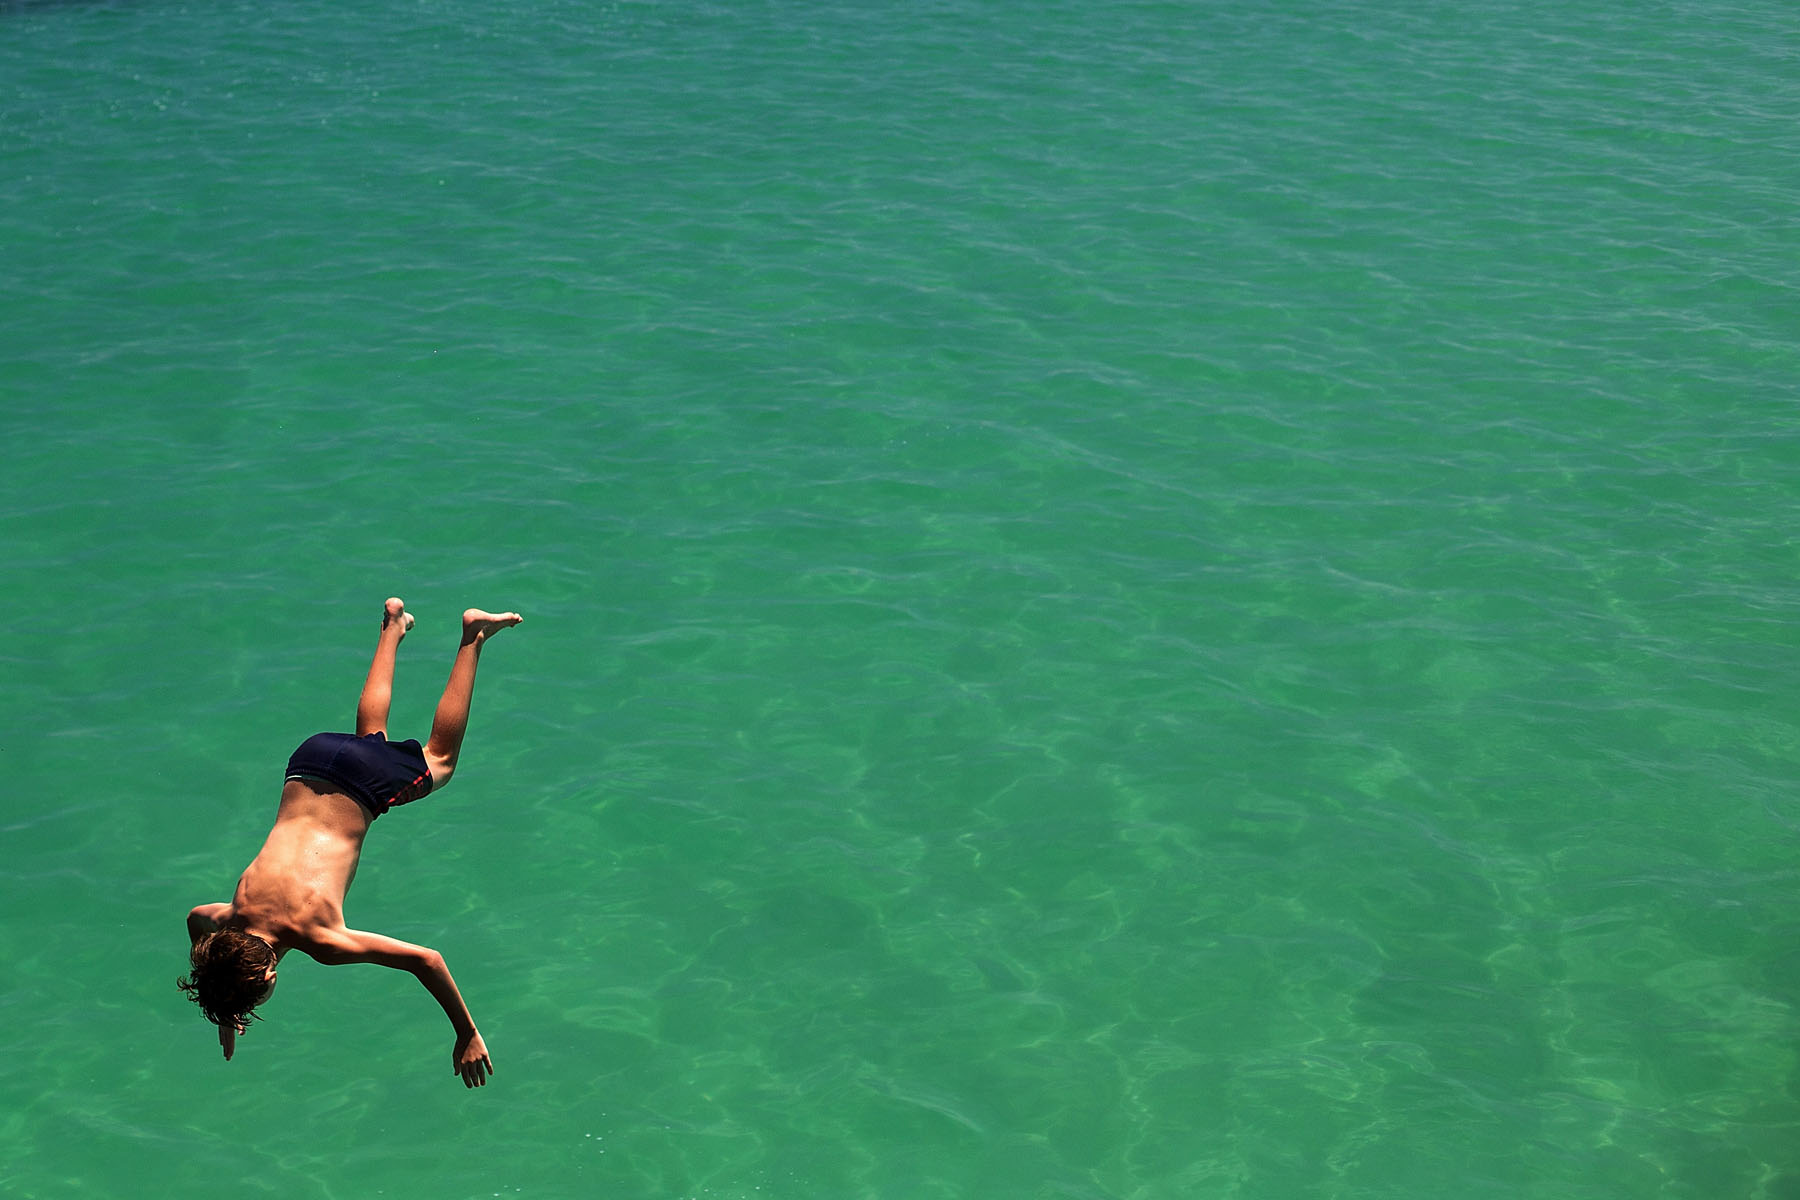 ADELAIDE, AUSTRALIA - JANUARY 13: A teenager jumps from the jetty during a heat wave at Glenelg beach on January 13, 2014 in Adelaide, Australia. Temperatures are expected to be over 40 degrees celsius all week with health authorities warning the young and elderly to remain indoors.  (Photo by Daniel Kalisz/Getty Images)